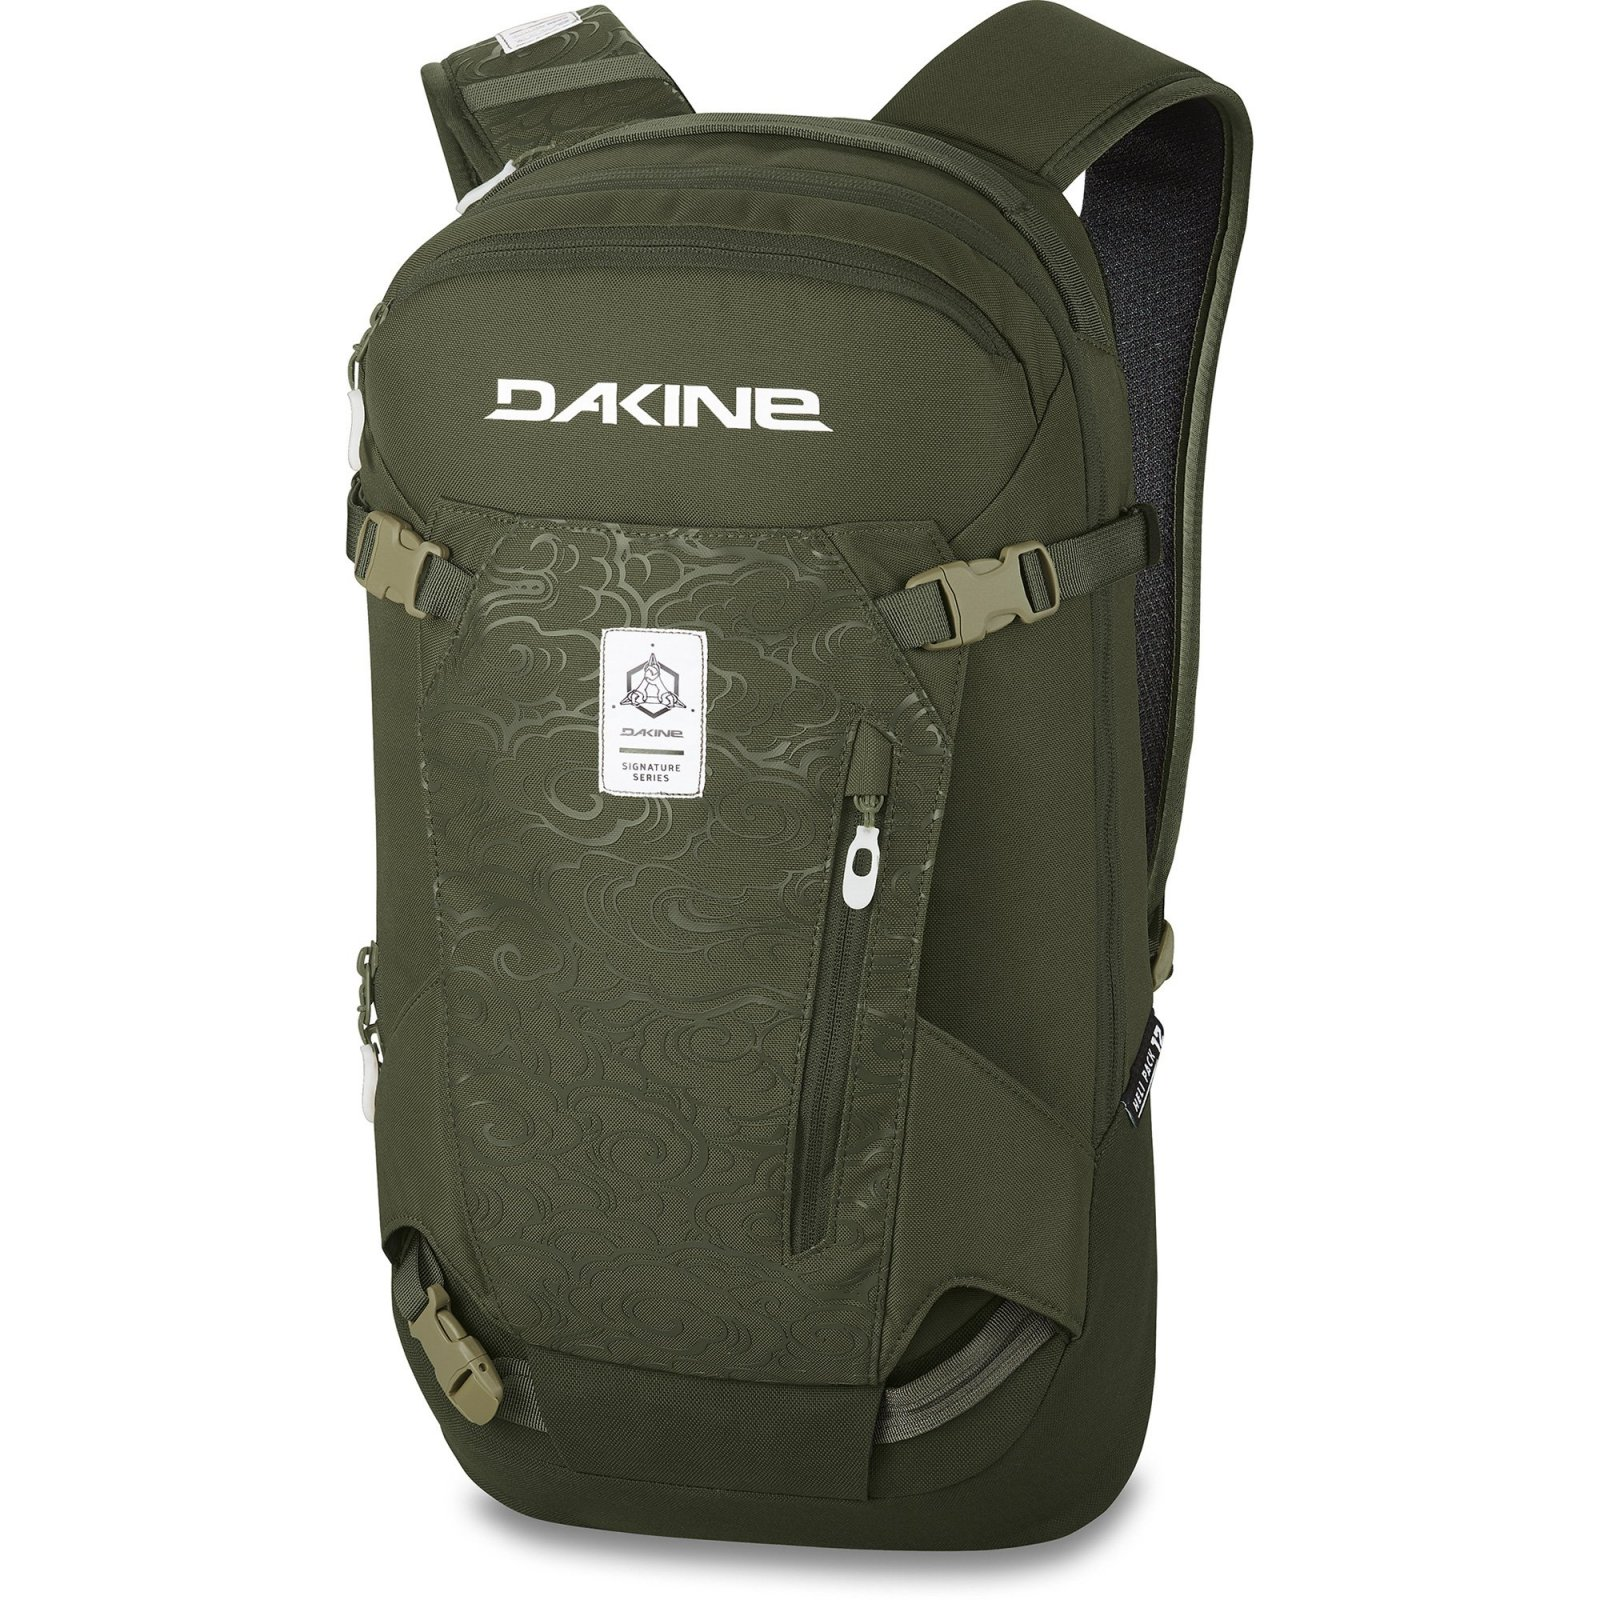 Dakine Heli Pack 12L (Multiple Color Options)